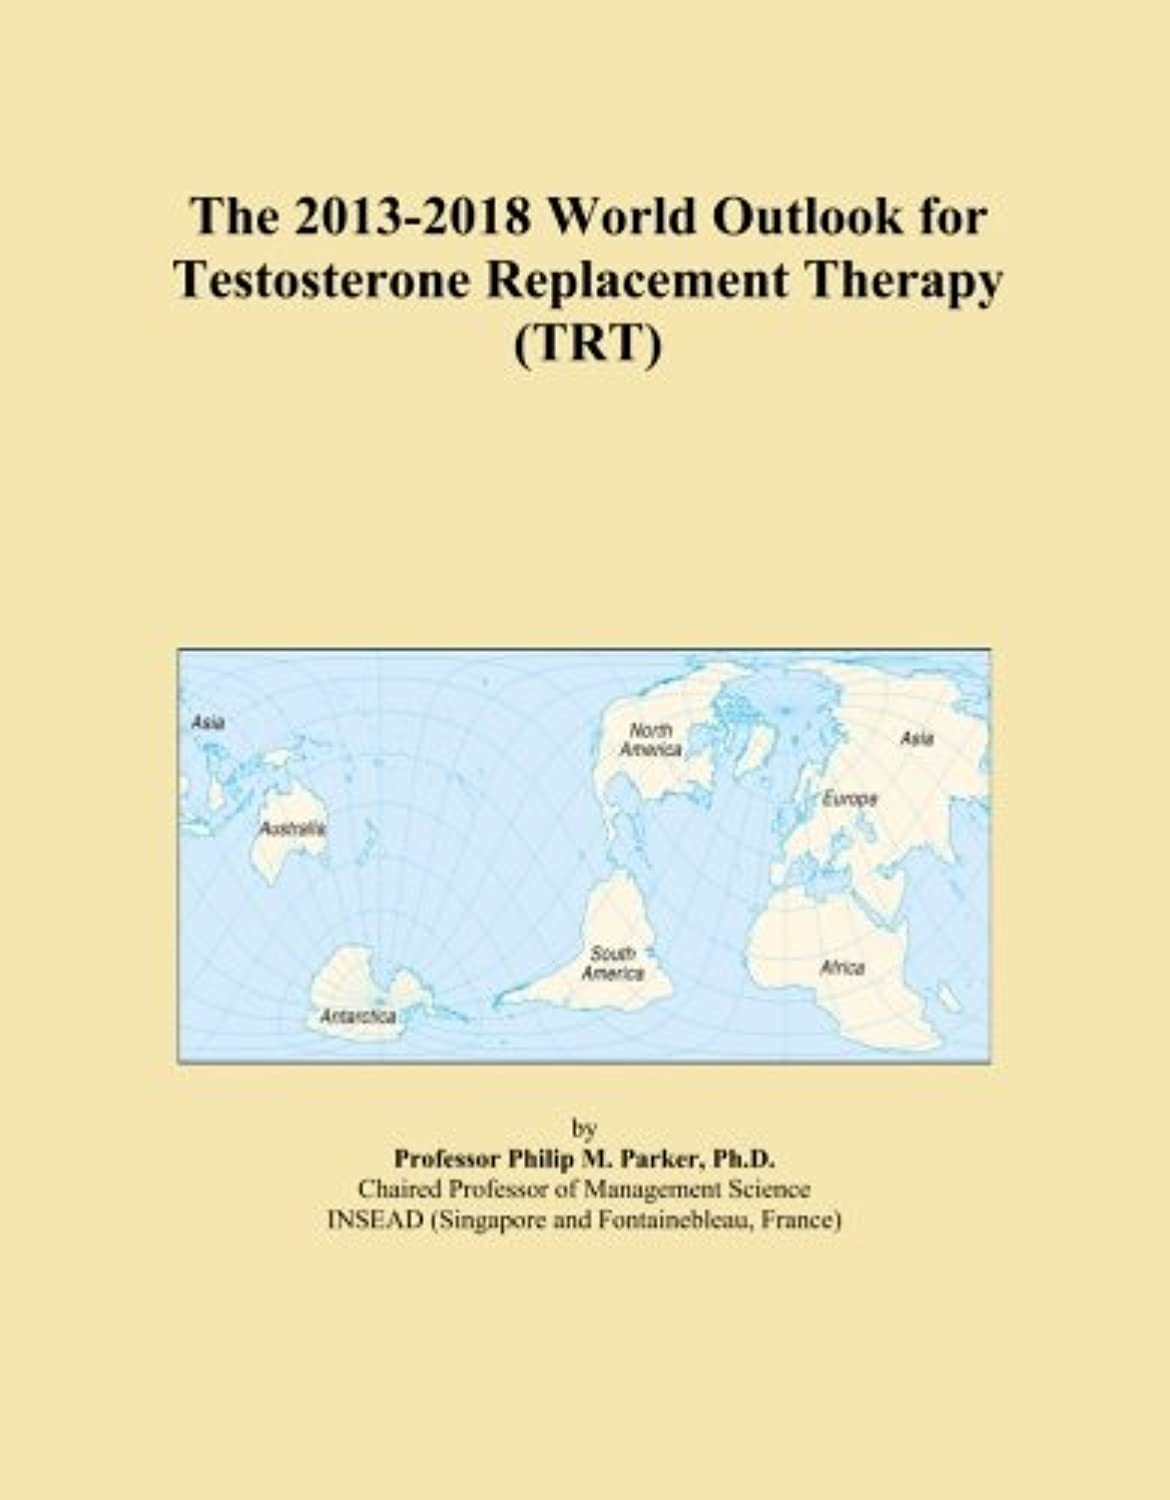 The 2013-2018 World Outlook for Testosterone Replacement Therapy (TRT)